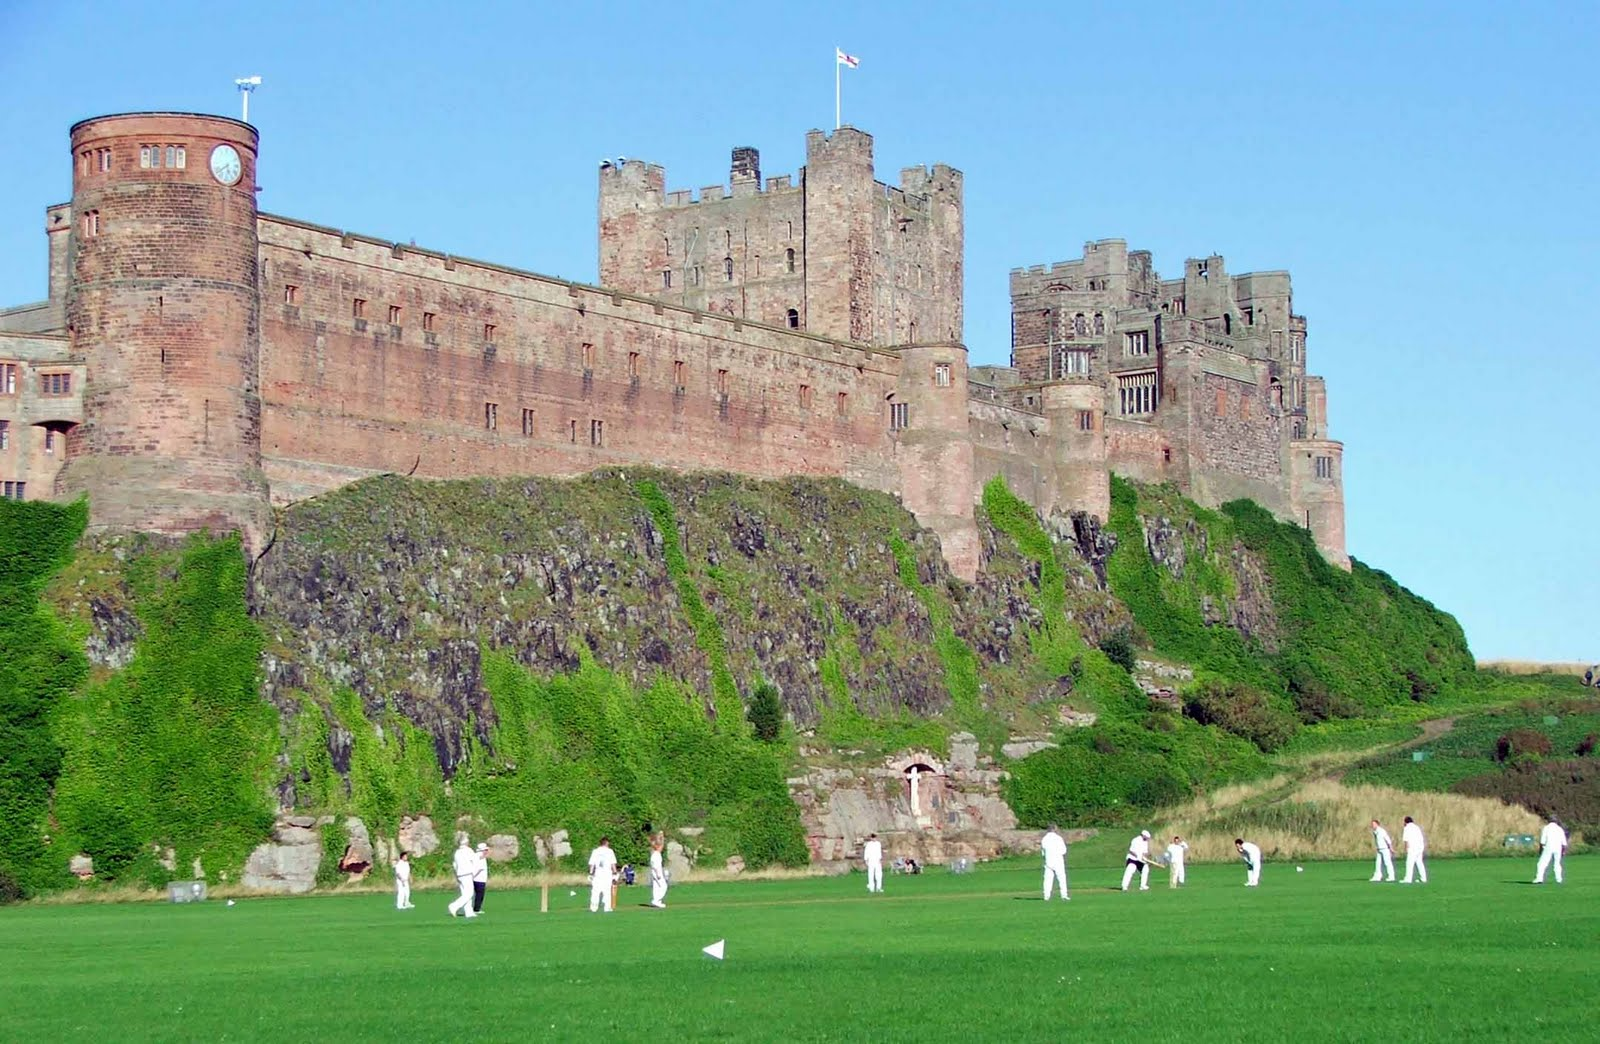 bamburgh castle - photo #28